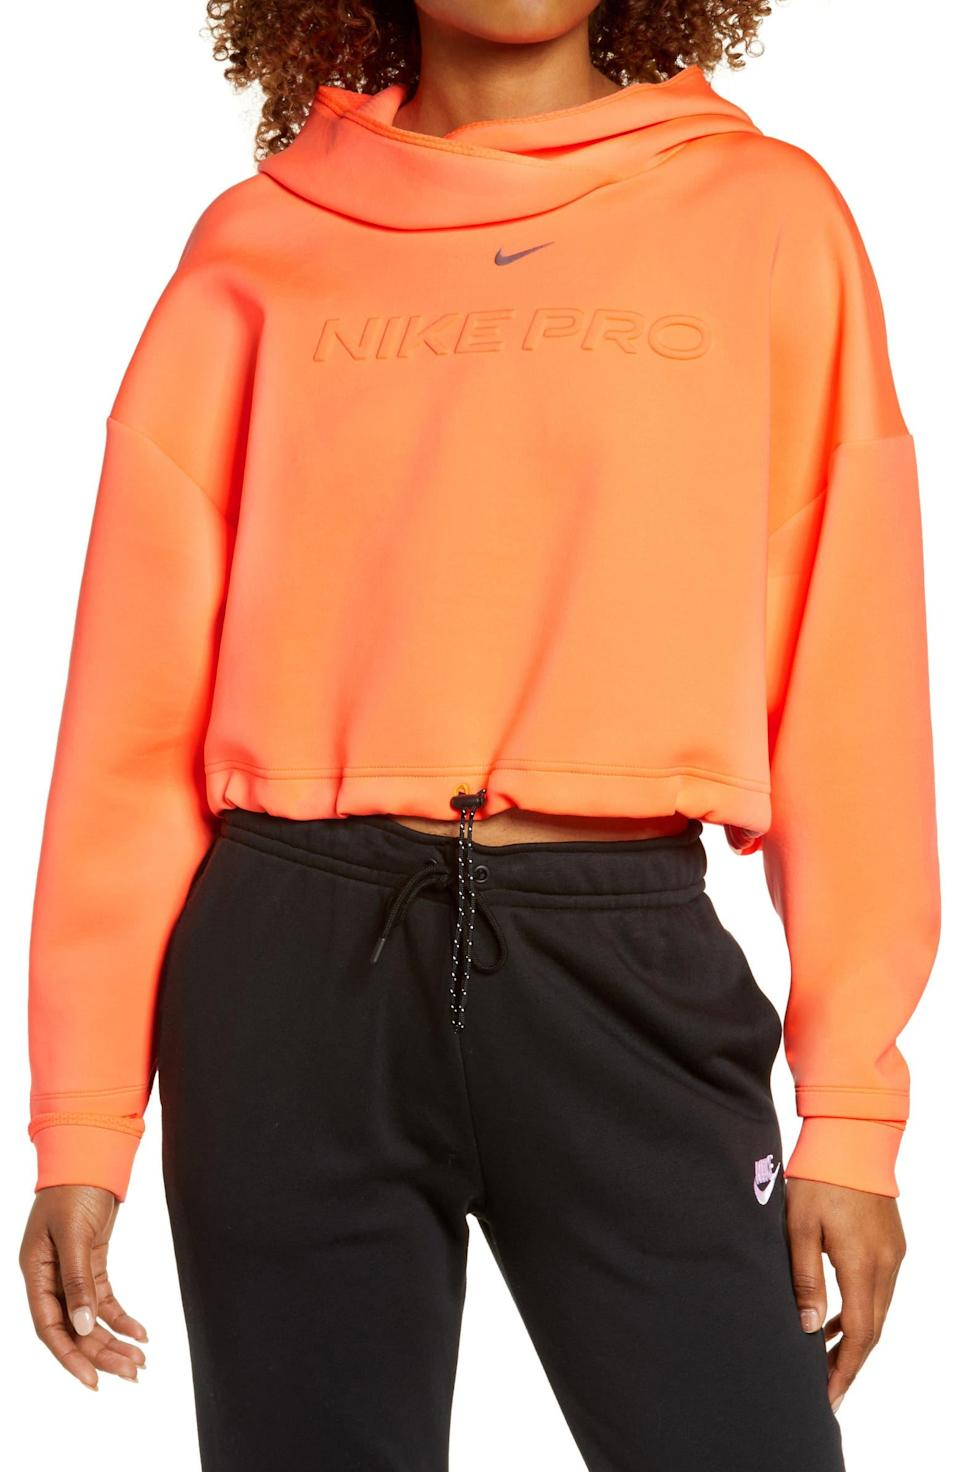 """<h2>Nike Pro-Clean Fleece Hoodie</h2><br>Nike doesn't often make it to the sale section, but when it does, we pounce — especially if the item in question is a cropped, quick-drying hoodie in a shade of iridescent neon. """"Love love this hoodie,"""" wrote reviewer VictoriaO883447444. """"So chic and effortless.""""<br><br><em>Shop <strong><a href=""""https://www.nordstrom.com/brands/nike--535"""" rel=""""nofollow noopener"""" target=""""_blank"""" data-ylk=""""slk:Nike"""" class=""""link rapid-noclick-resp"""">Nike</a></strong></em><br><br><strong>Nike</strong> Pro Clean Fleece Hoodie, $, available at <a href=""""https://go.skimresources.com/?id=30283X879131&url=https%3A%2F%2Fwww.nordstrom.com%2Fs%2Fnike-pro-clean-fleece-hoodie%2F6118225%3F%26color%3Dbright%2520mango%252F%2520metallic%2520silver"""" rel=""""nofollow noopener"""" target=""""_blank"""" data-ylk=""""slk:Nordstrom"""" class=""""link rapid-noclick-resp"""">Nordstrom</a>"""